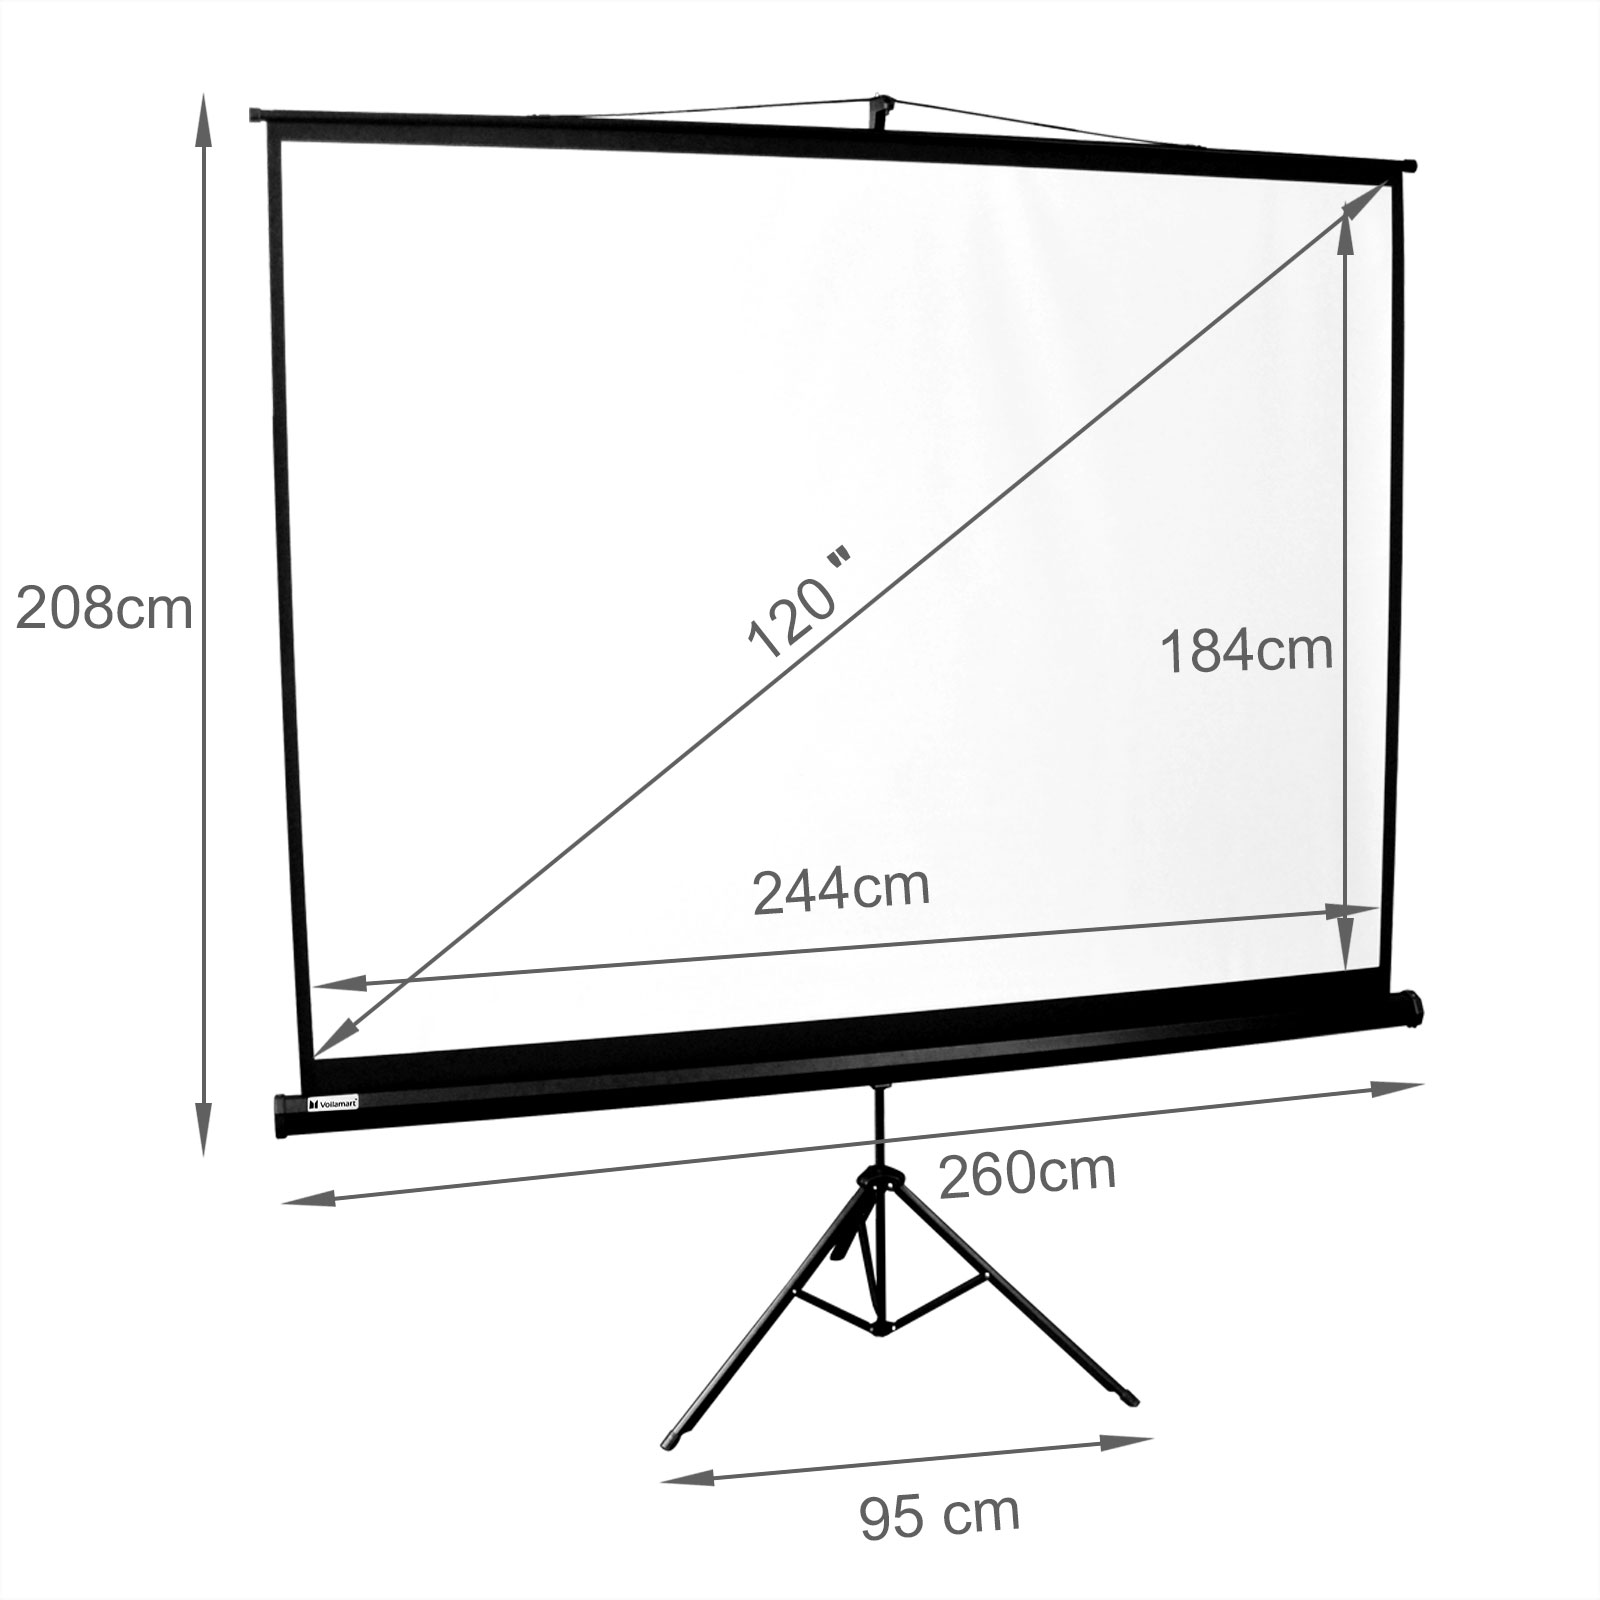 120 Inch Portable Tripod Projector Screen Conference